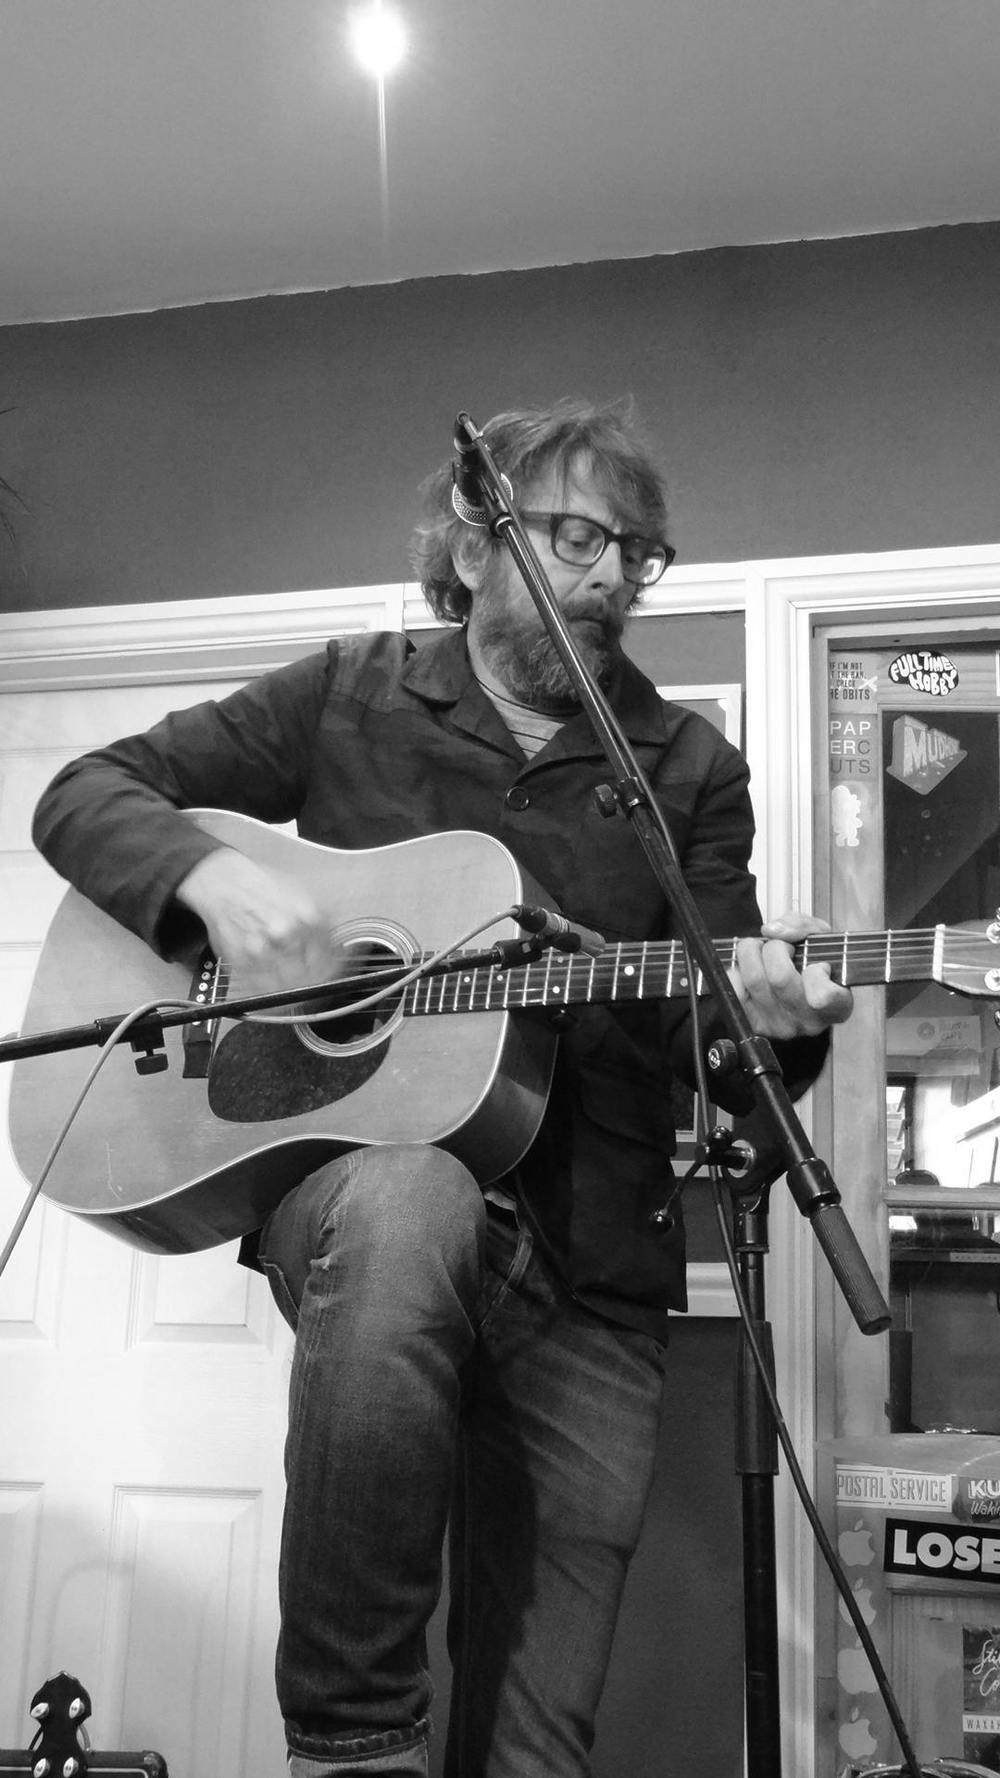 Andy Watts live at 'Drift Record Shop' April 19th 2014 - Record Store Day